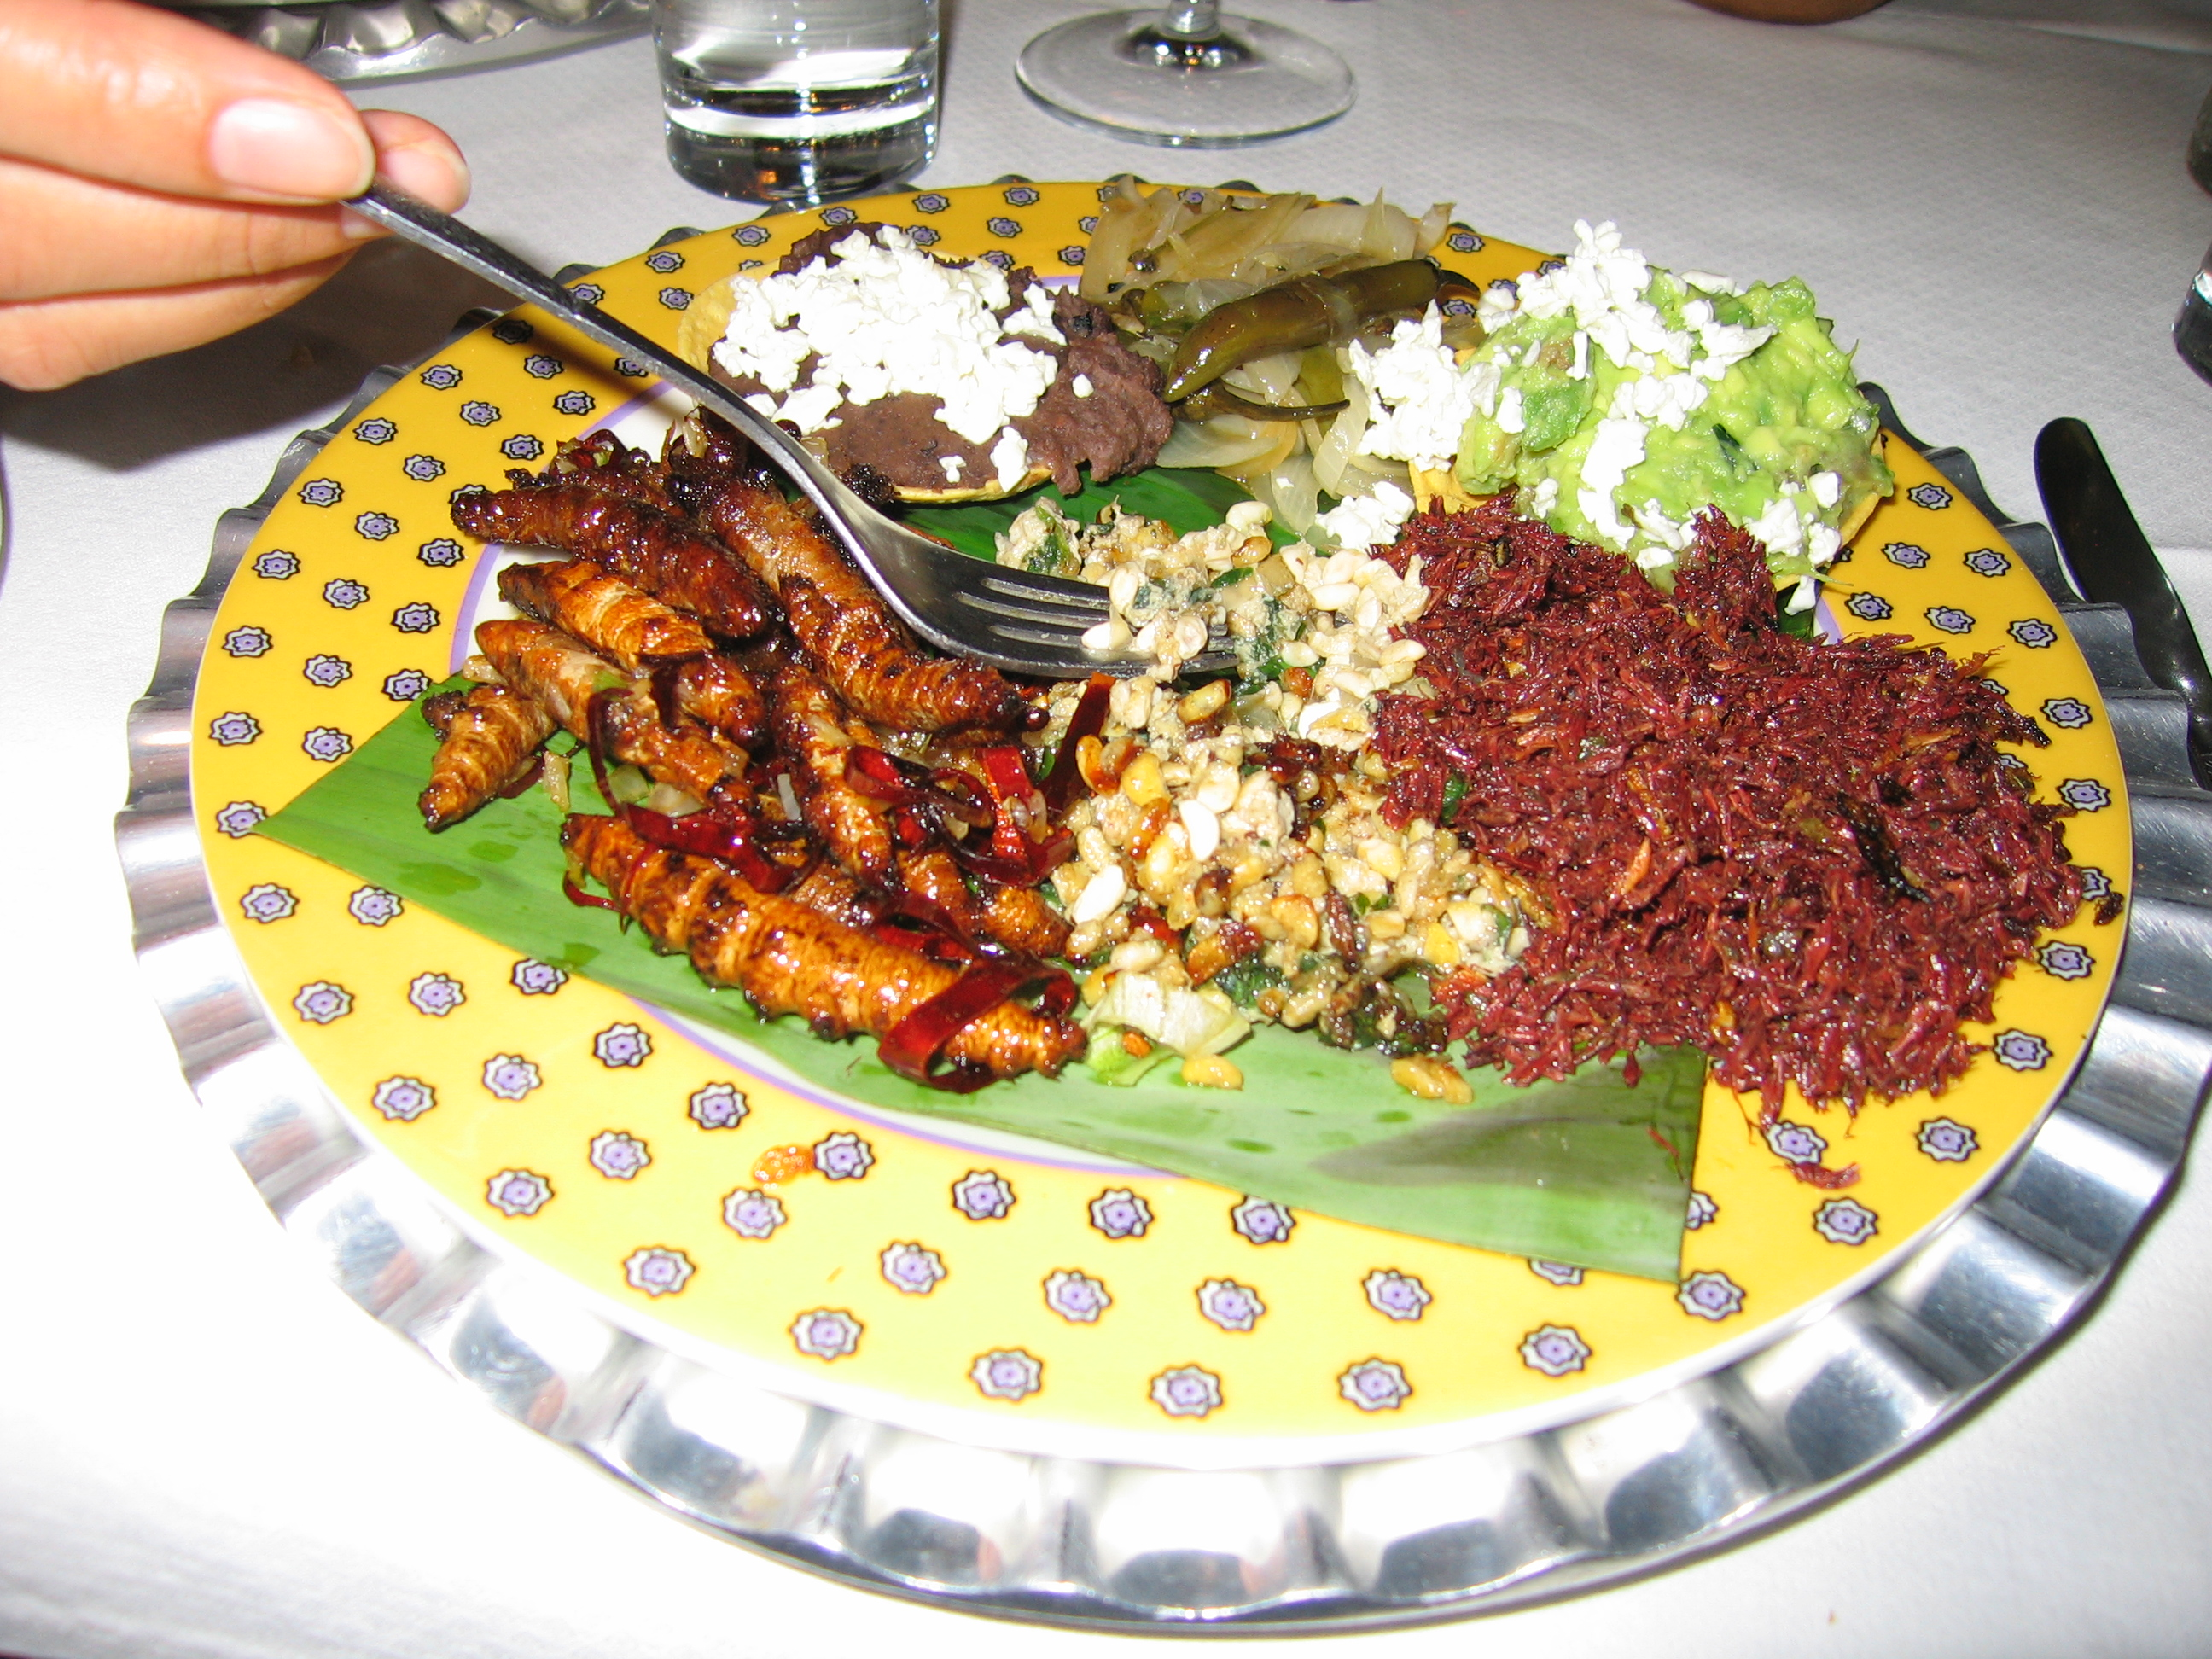 File:Larvae, ant eggs and grasshoppers dish.jpg - Wikimedia Commons